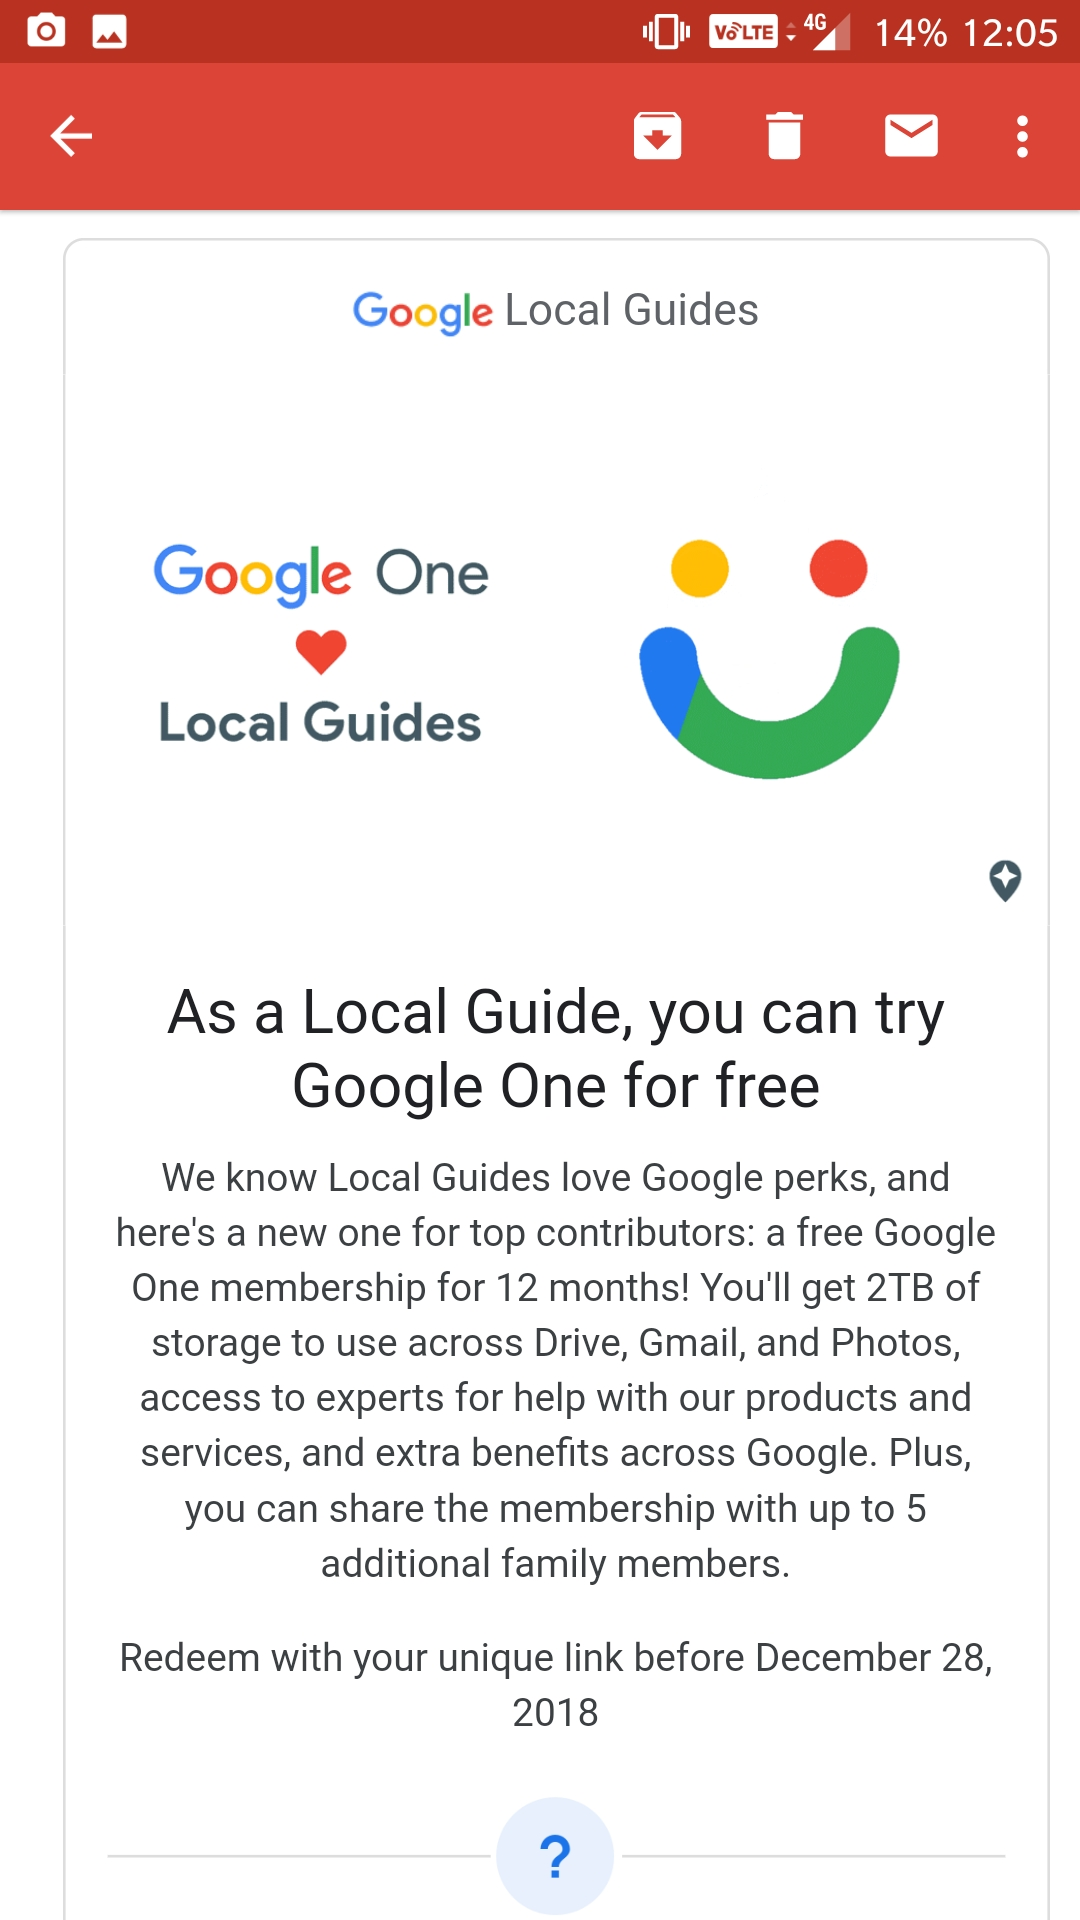 Local Guides Connect - Google One Perk - Local Guides Connect